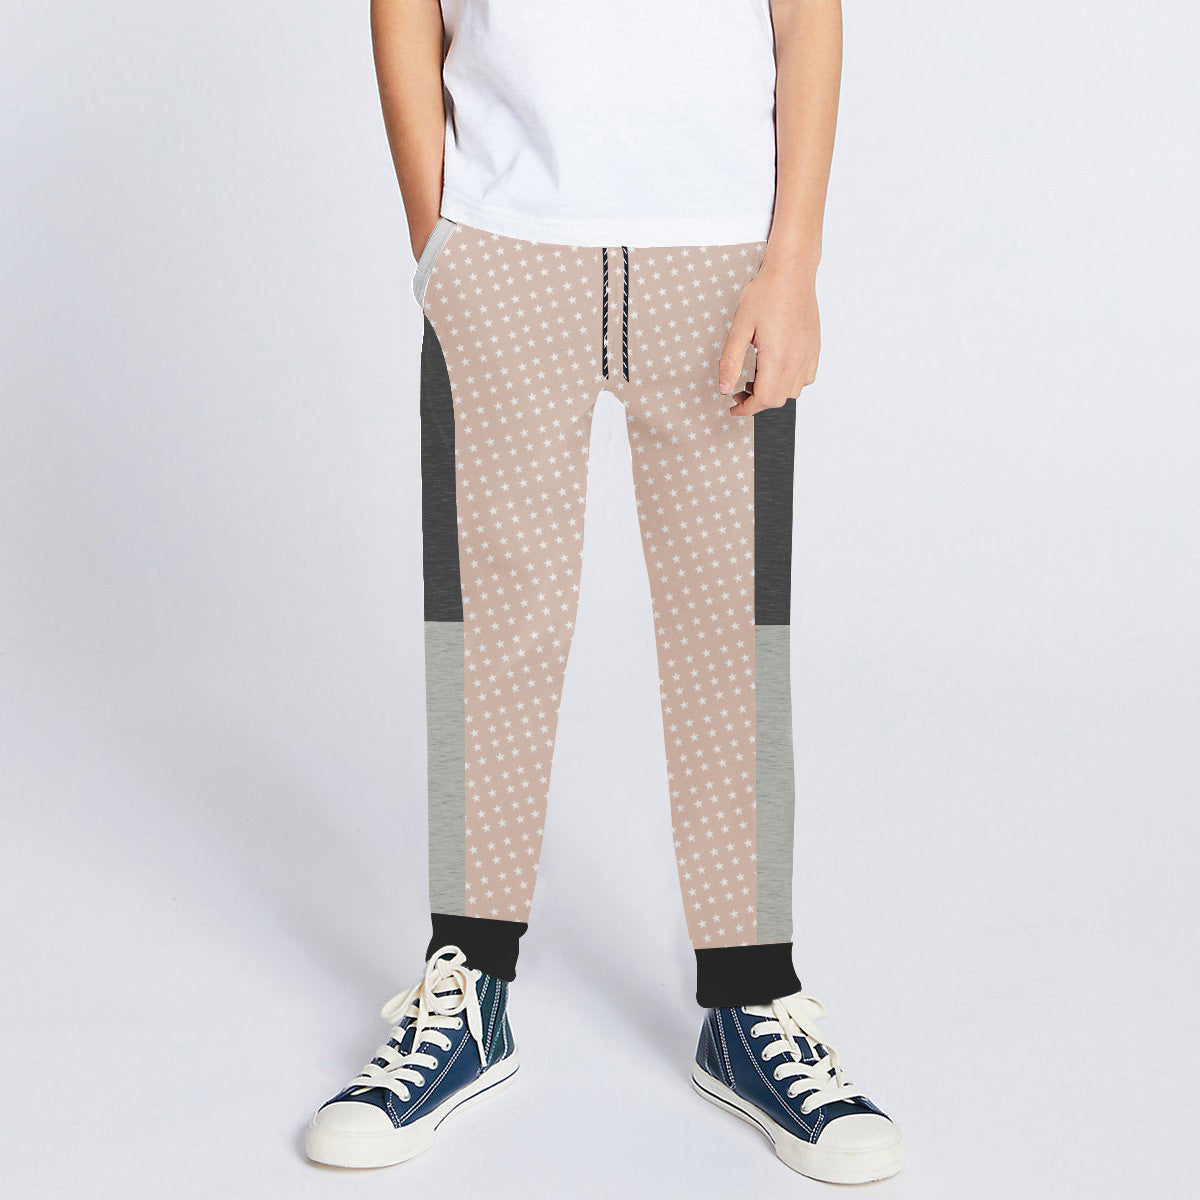 Next Slim Fit Jogger Trouser For Kids-Light Peach Melange with All Over Star Print & Panels-SP2677